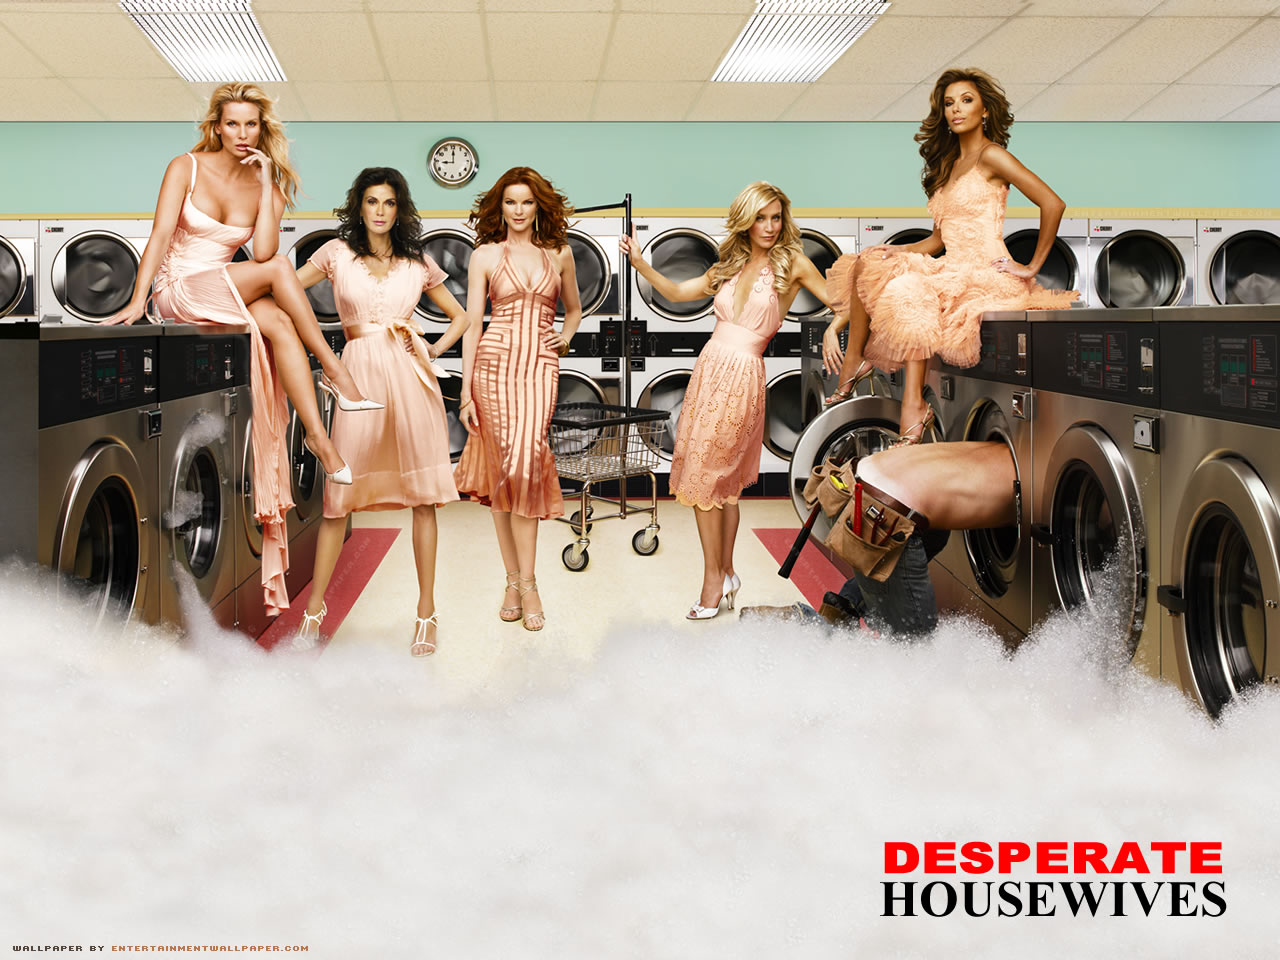 http://1.bp.blogspot.com/_BDjiU-1fg08/TB4a0hwuFnI/AAAAAAAAAAM/Z7iluEregS8/s1600/Desperate-Housewives-cast-desperate-housewives-791679_1280_960.jpg